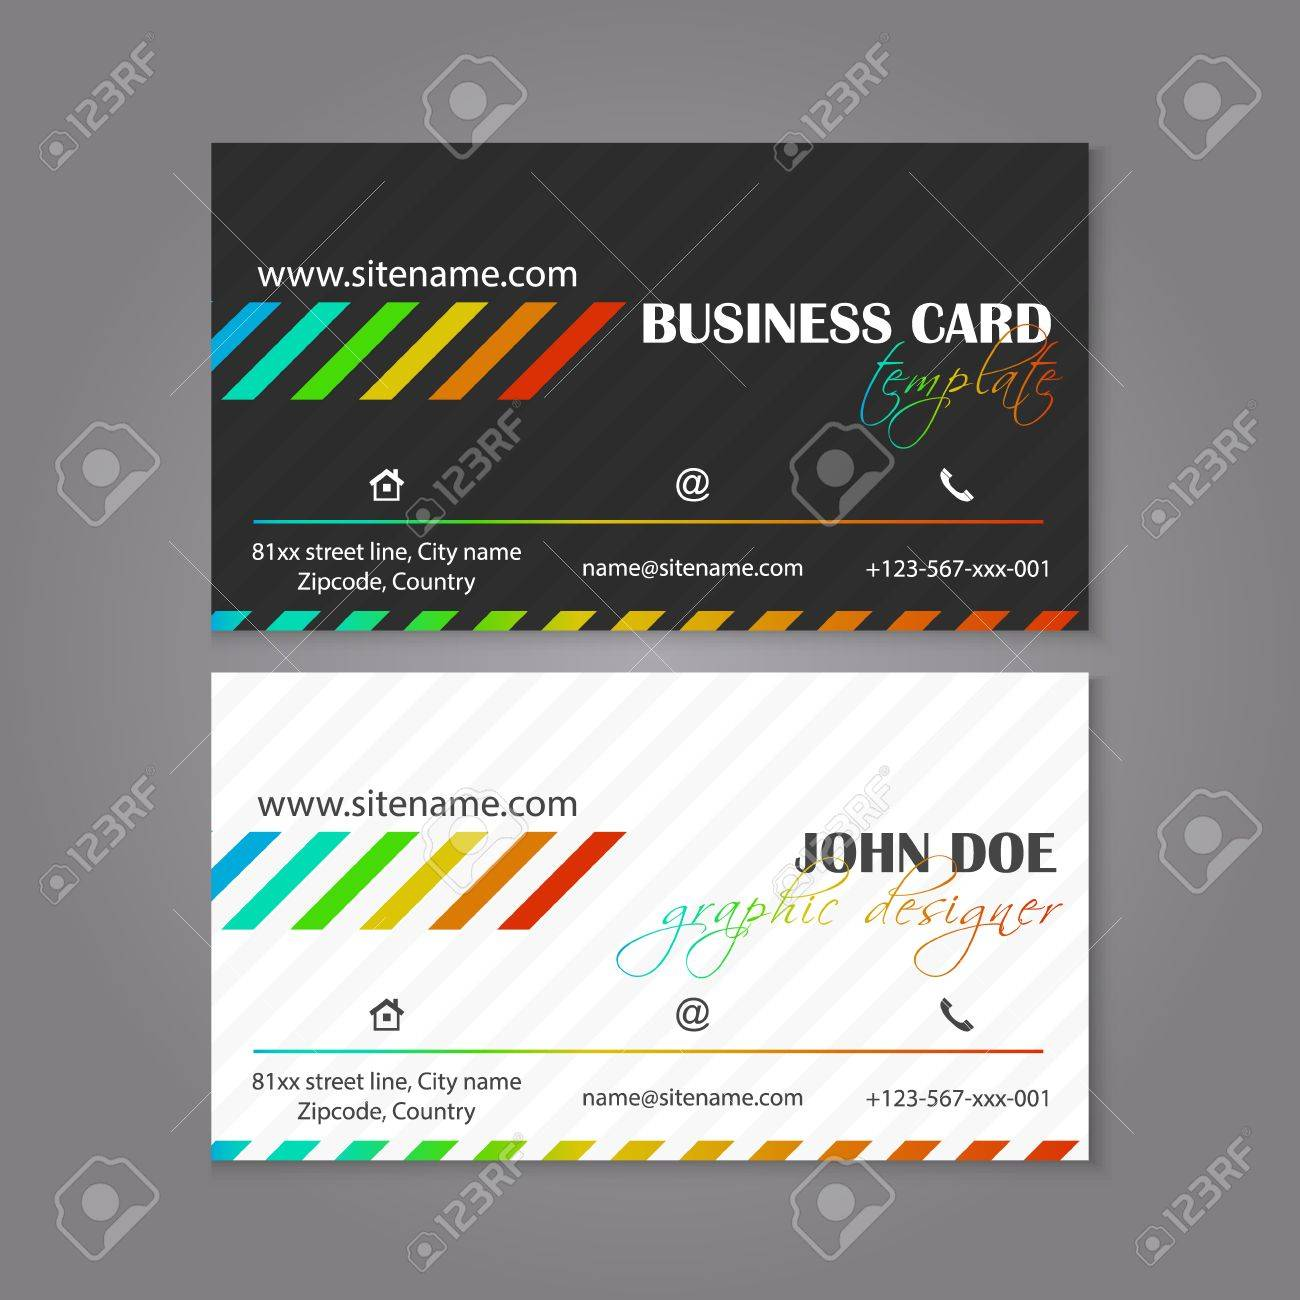 Corporate business card template the multiple layers are easy corporate business card template the multiple layers are easy to edit to alter text flashek Gallery